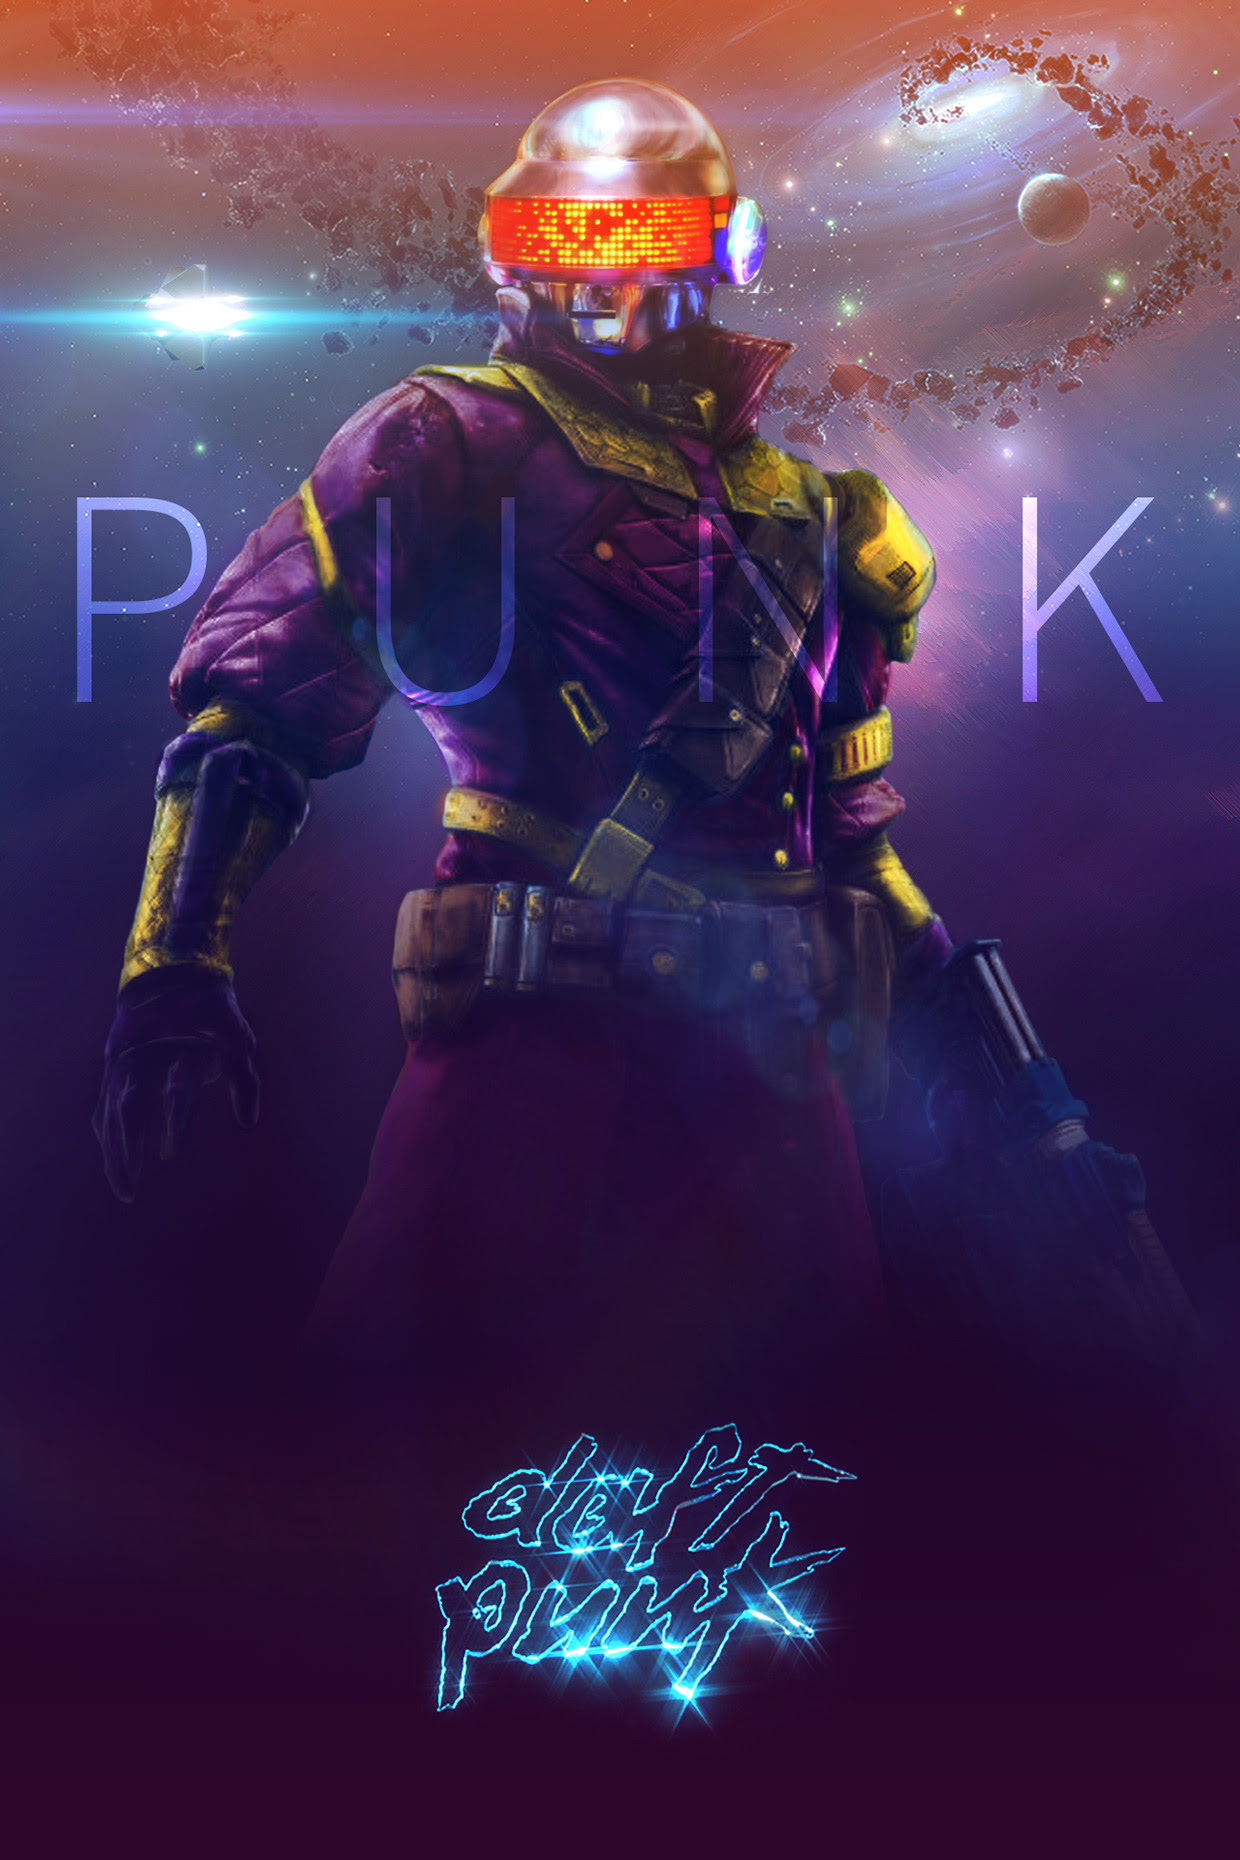 Daft Punk Meets Destiny by Sean Gall